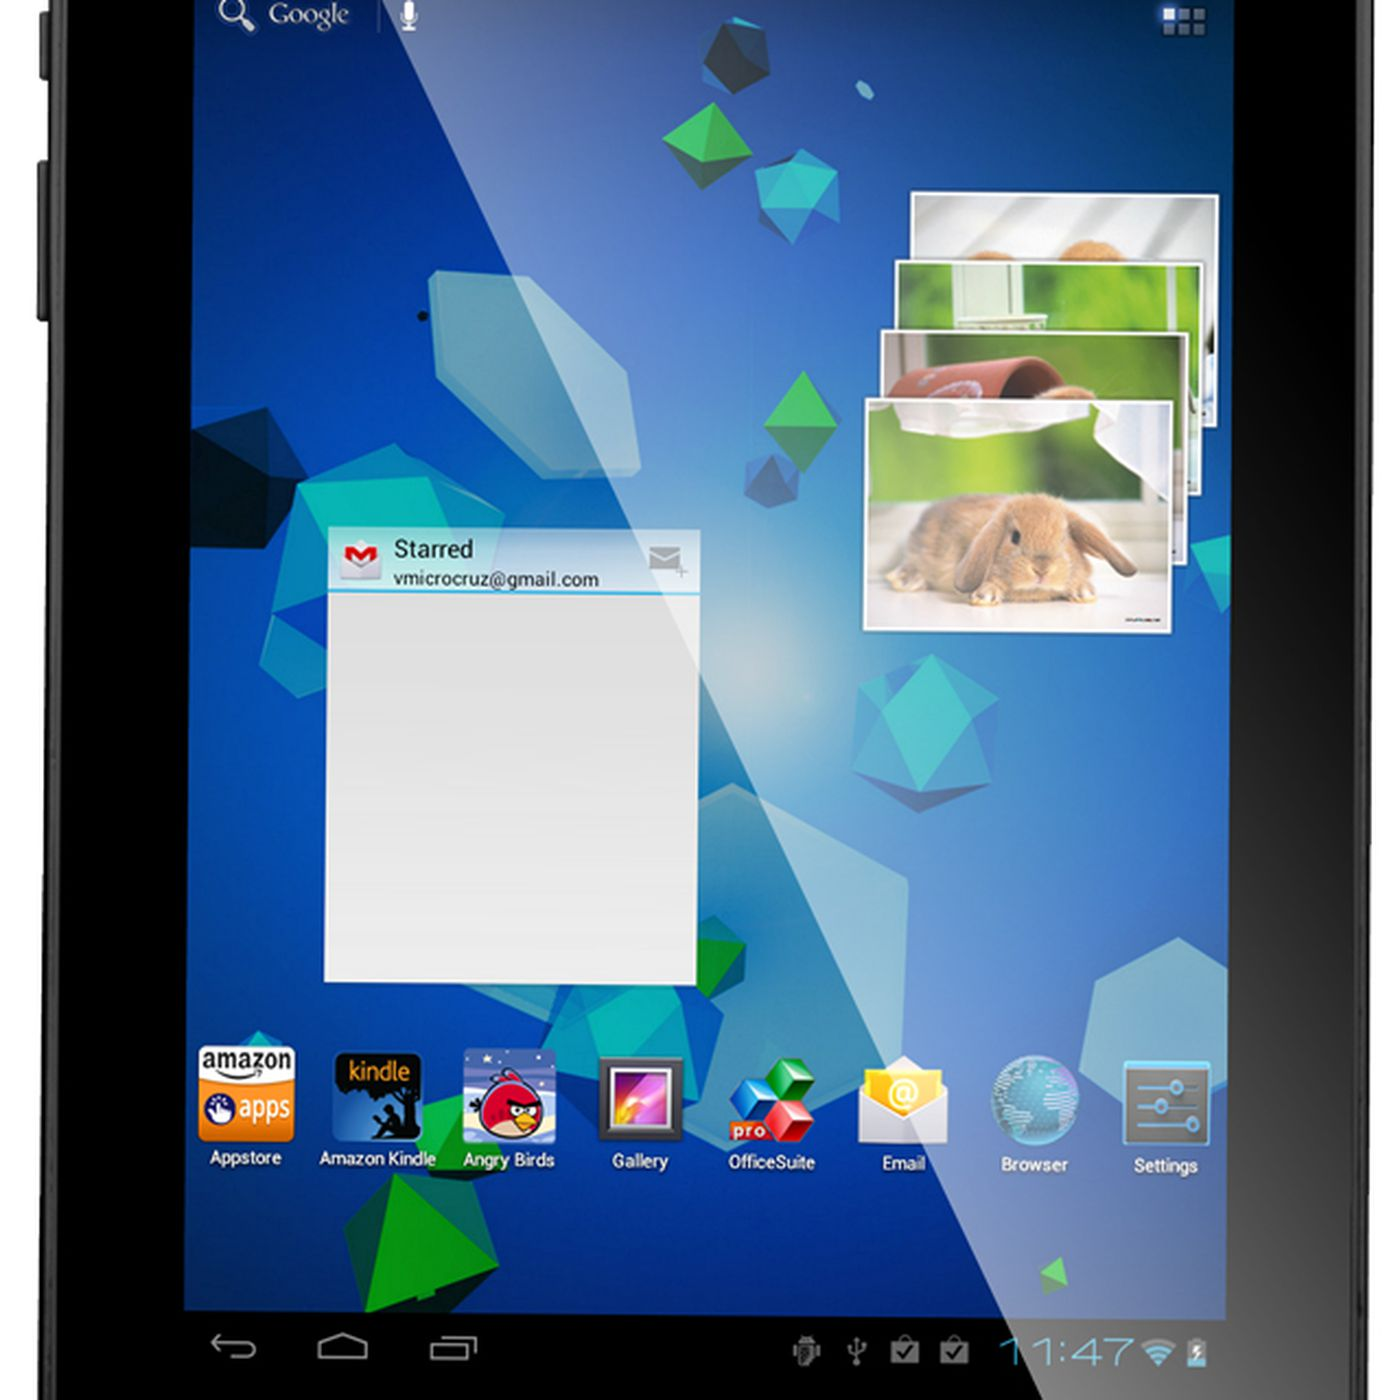 Swell Velocity Micro Cruz T507 And T510 Android 4 0 Tablets Hands Download Free Architecture Designs Xaembritishbridgeorg